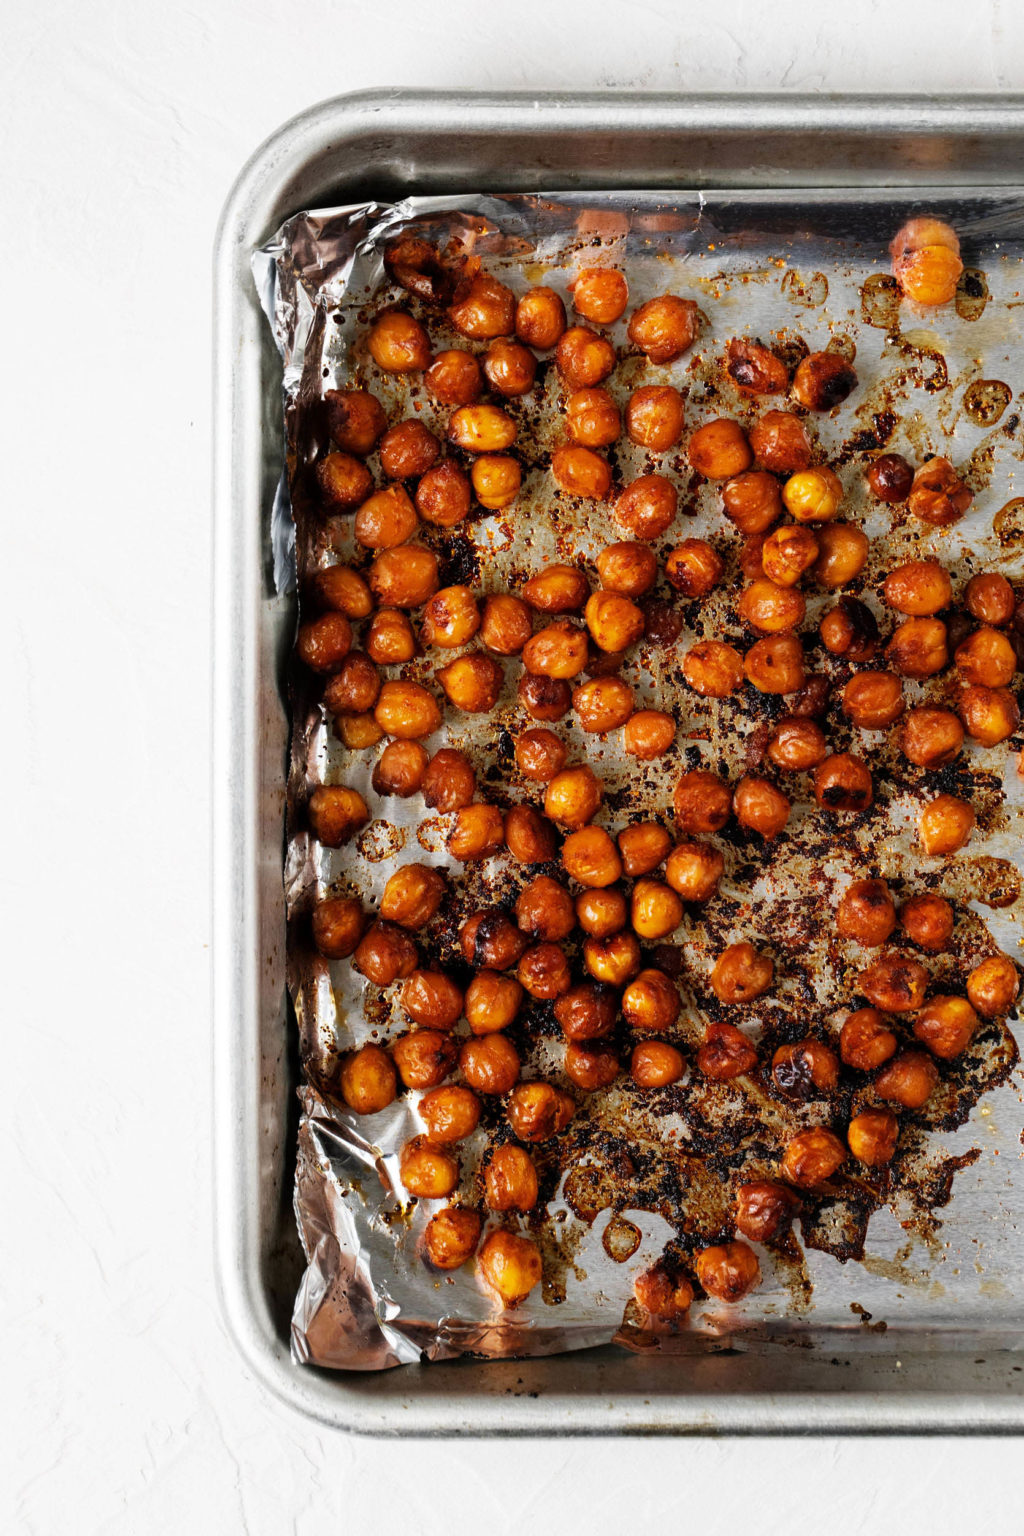 A silver baking sheet is lined with foil and filled with crispy roasted chickpeas.